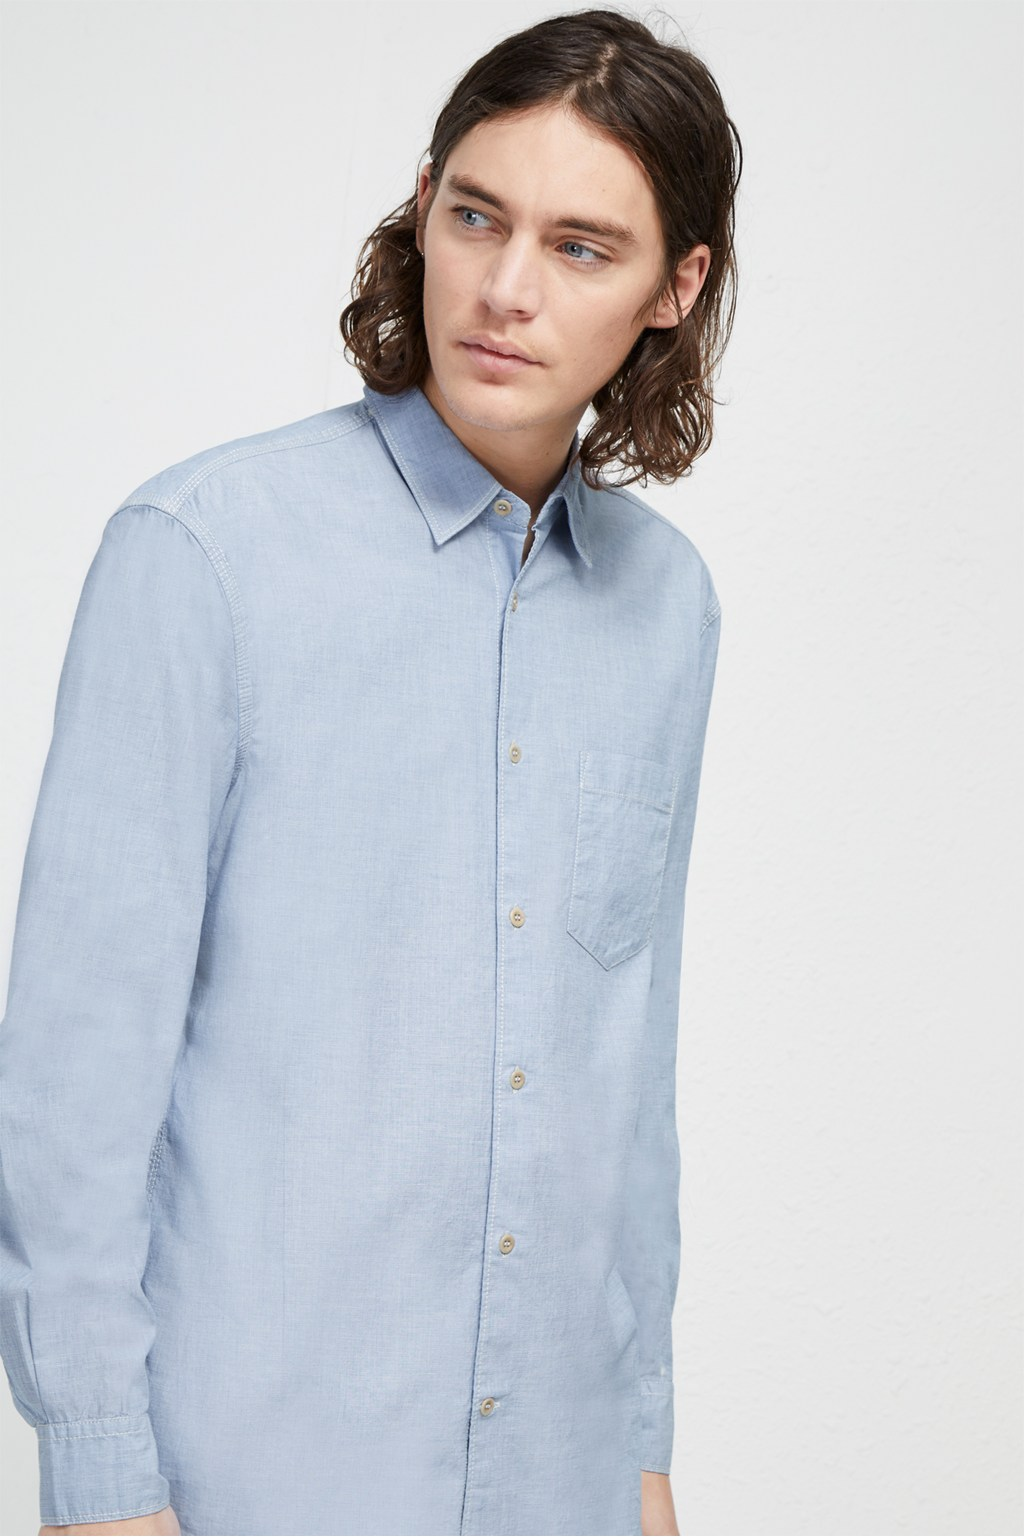 afa59390ad88b End On End Loose Collared Shirt. loading images... loading images.